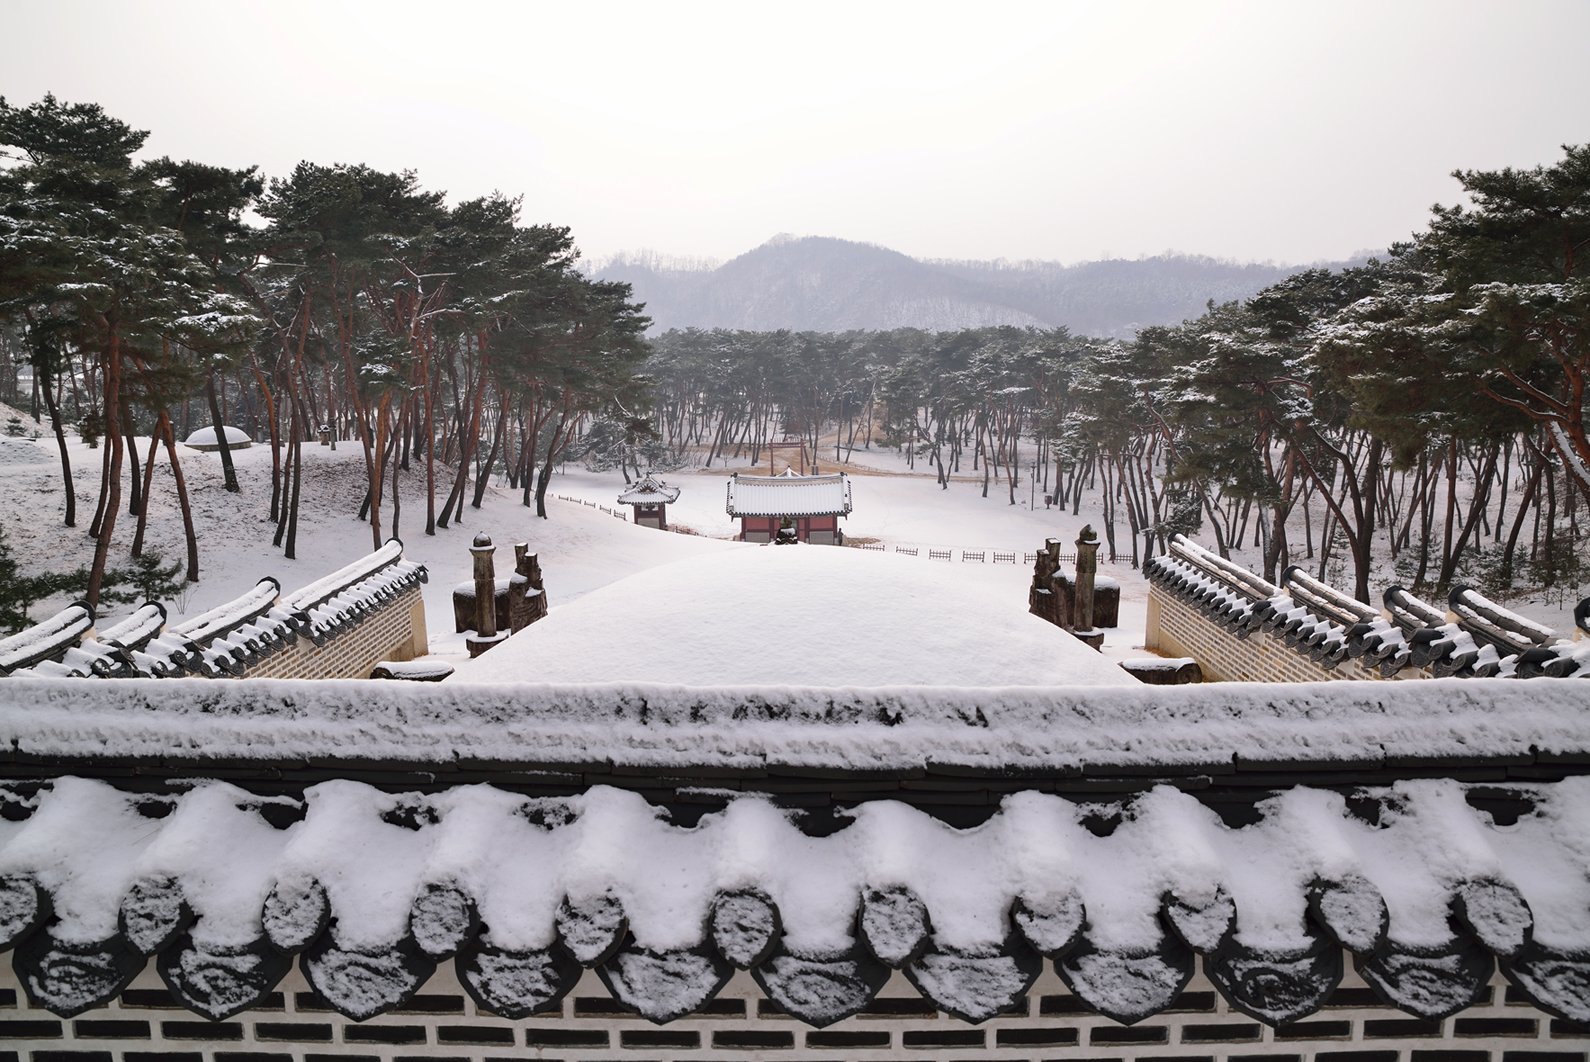 Royal Tombs of the Joseon Dynasty4